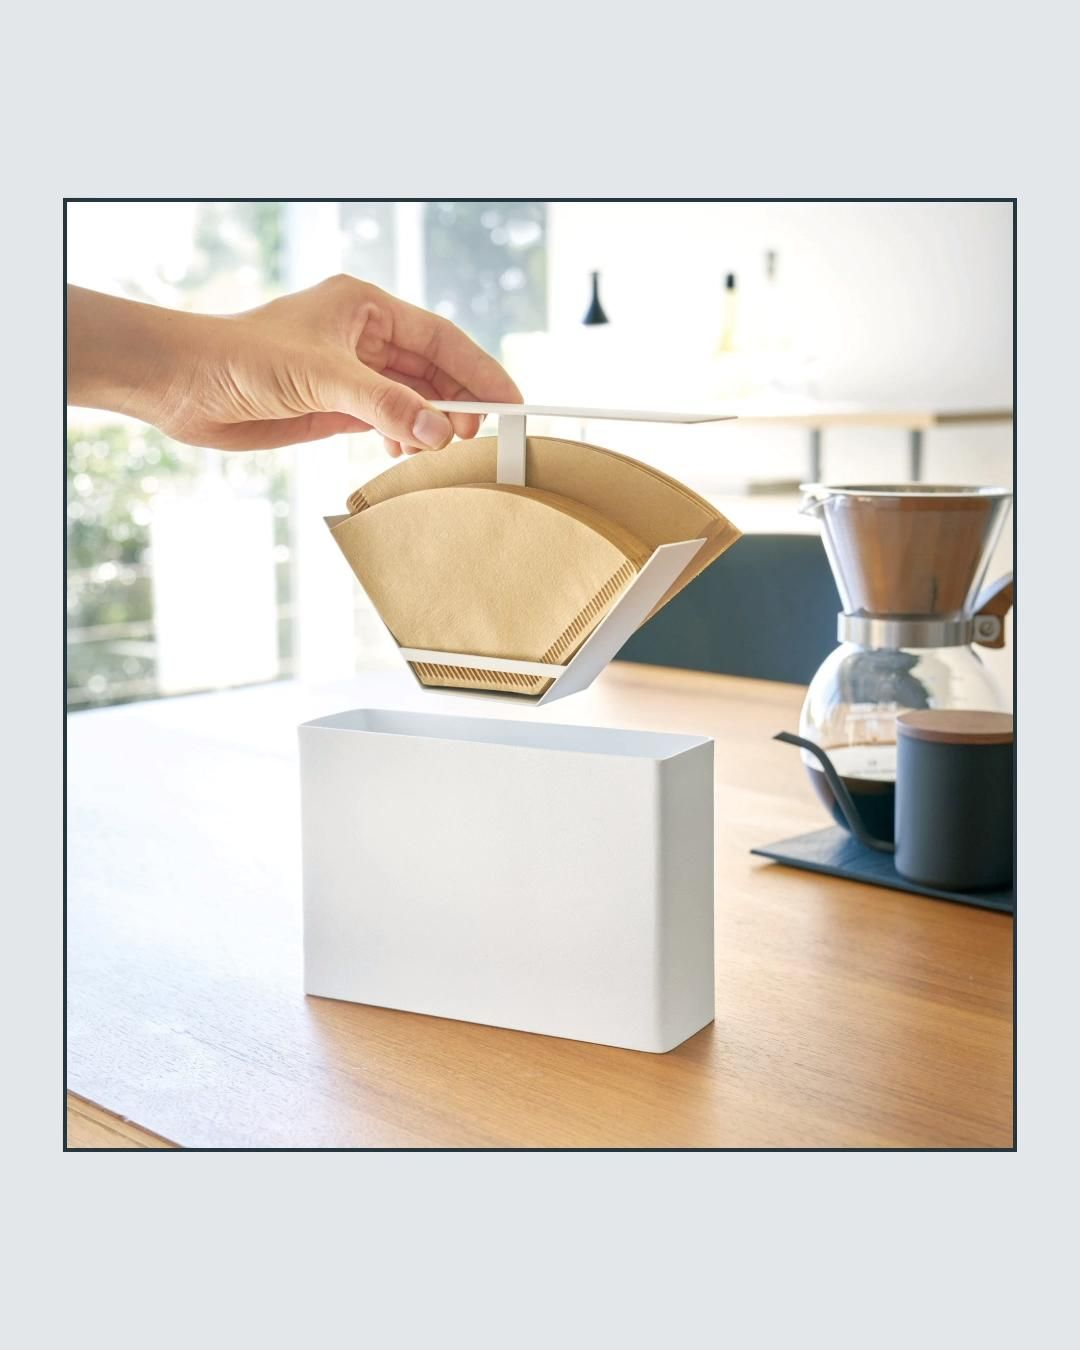 Bring a little modern sophistication to your mornings. This attractive paper coffee filter keeps them dust free and easily accessible on your countertop or cabinet. Holds #1 and #2 filters.